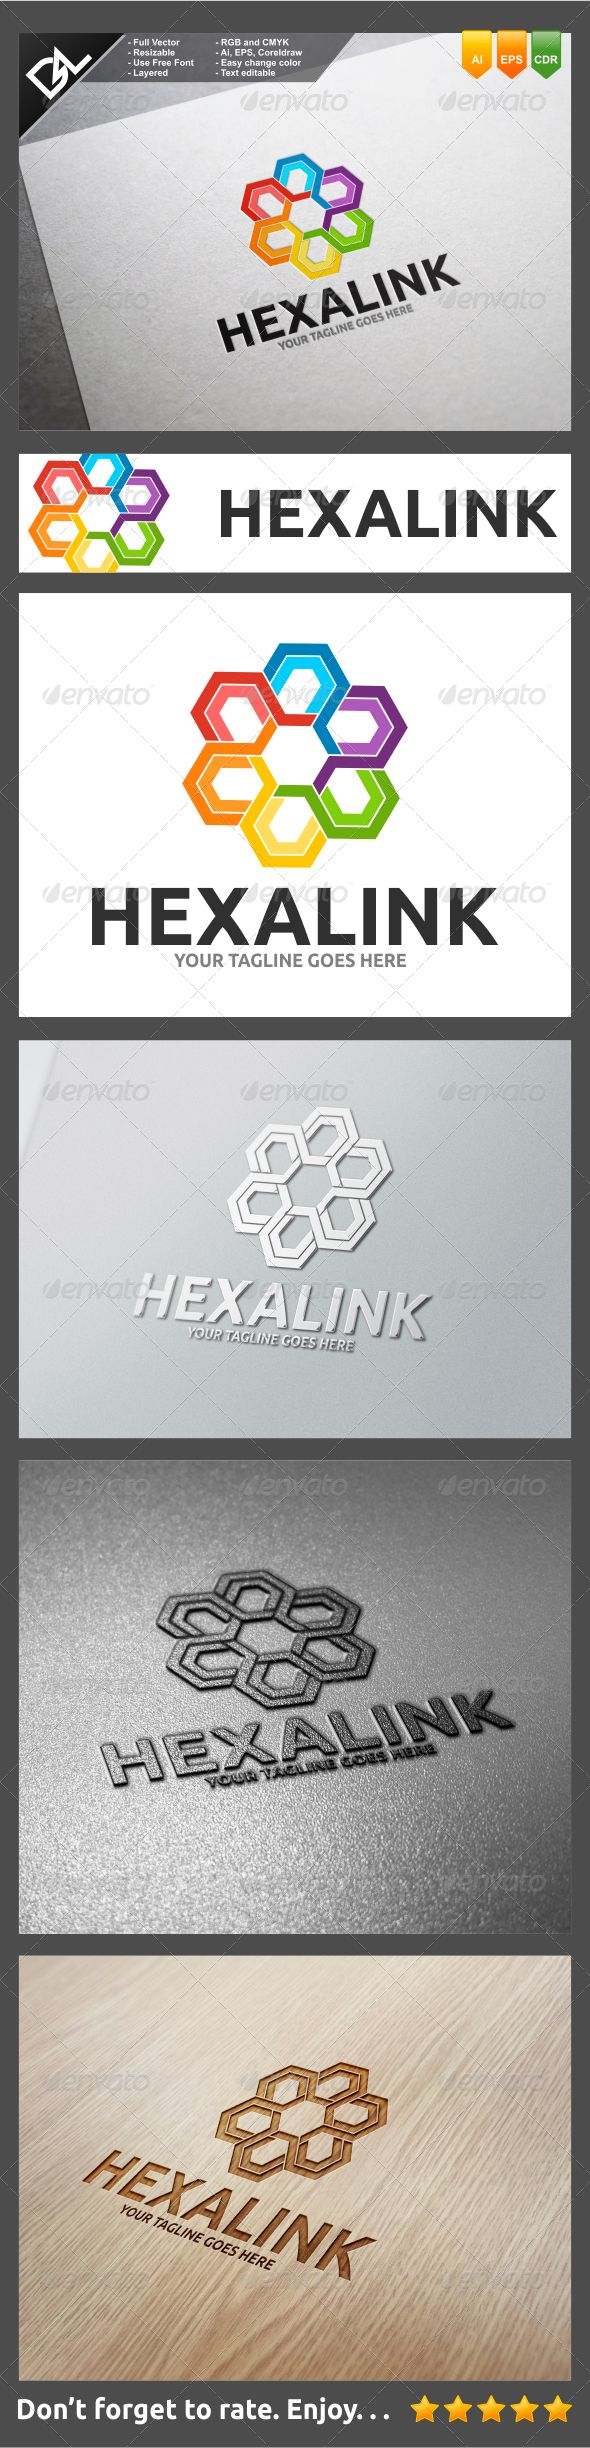 Hexalink Logo Template Easy to edit logo template with your own company name with vector for highly resizeable and printing.Featur